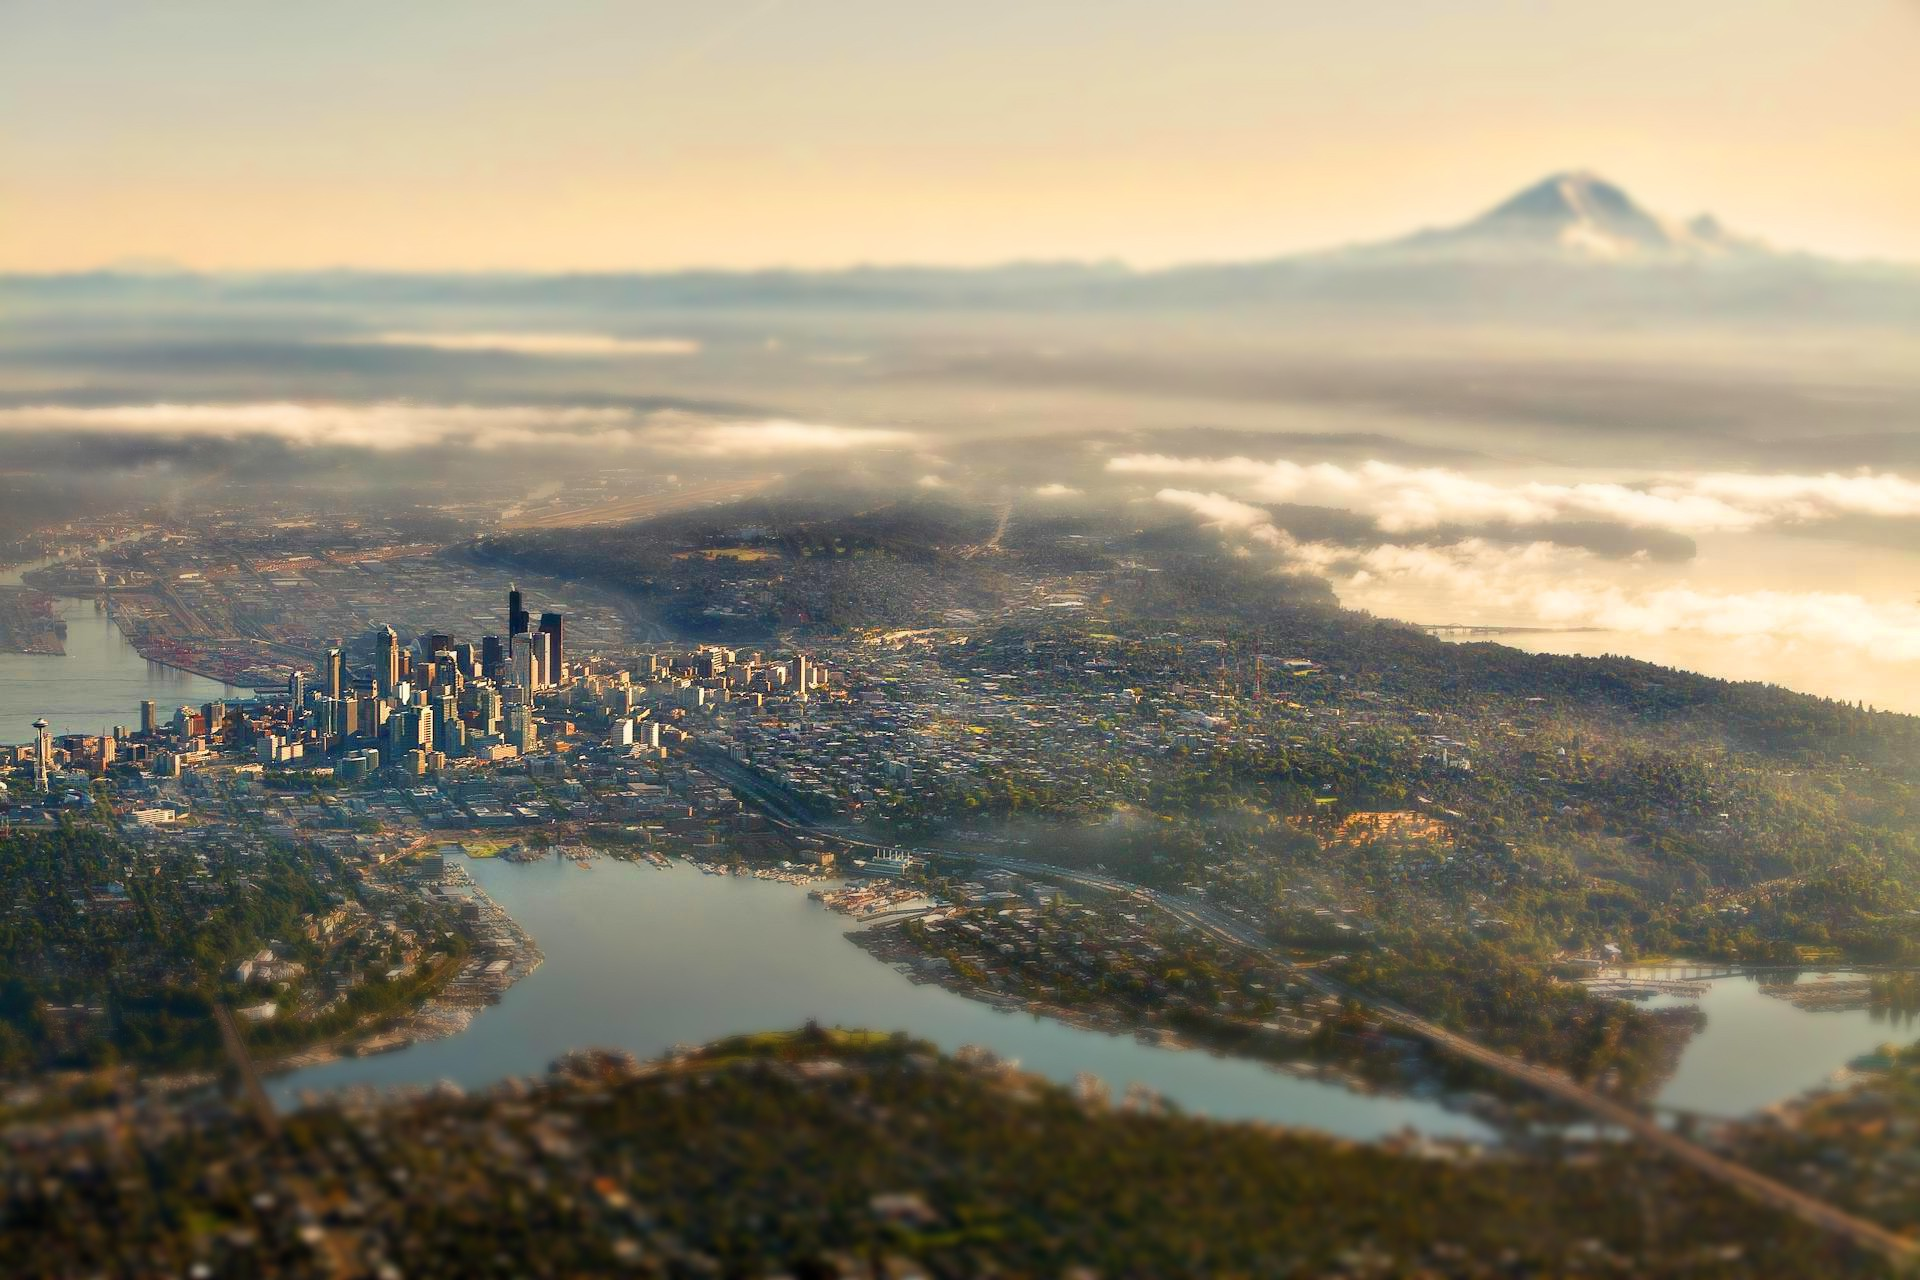 1920x1280 landscape, Nature, Tilt Shift, City, Seattle, Mount Rainier, Clouds  Wallpapers HD / Desktop and Mobile Backgrounds